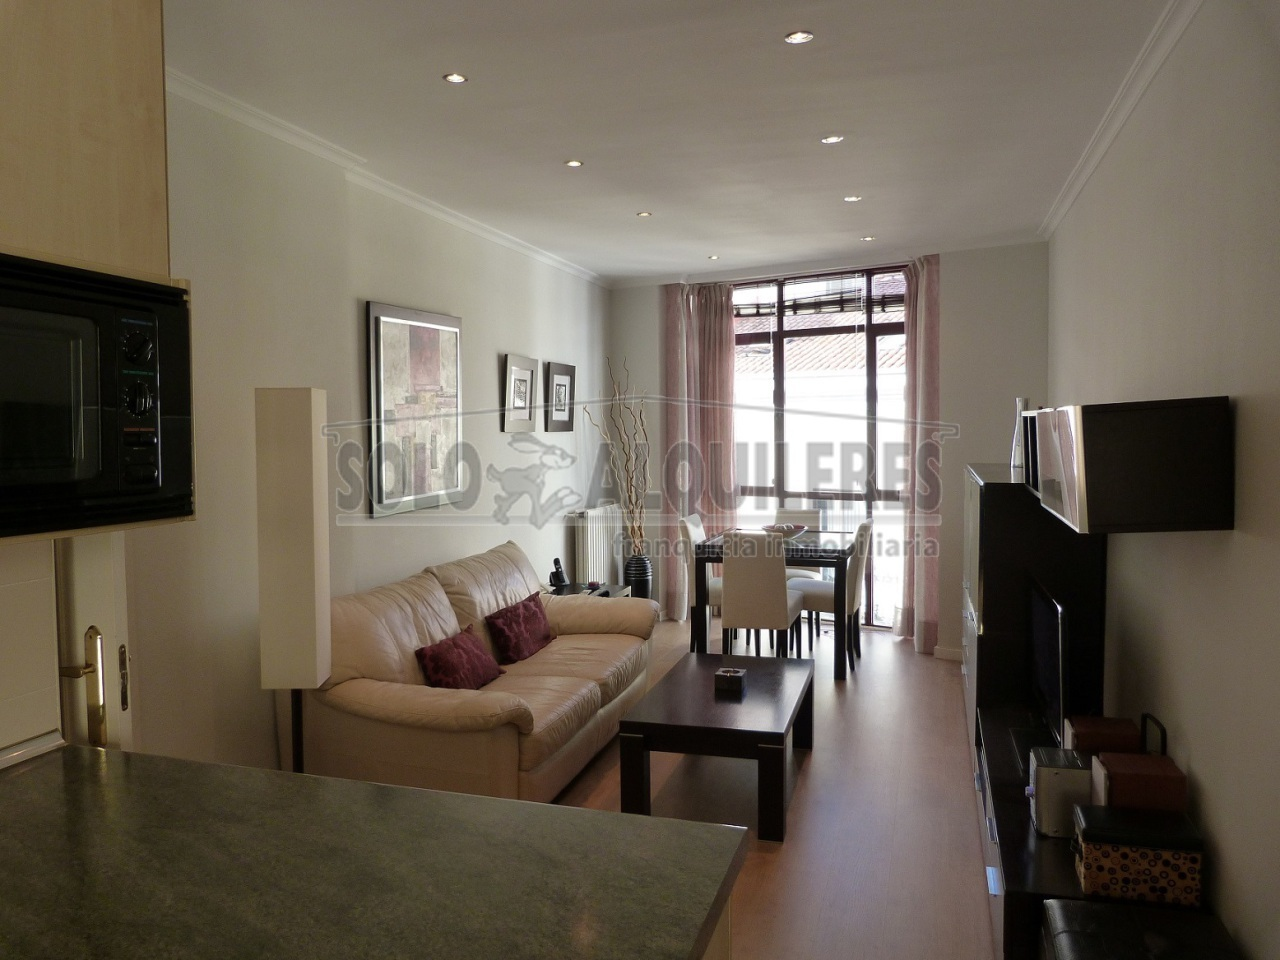 wohnung-in-miete-in-madrid